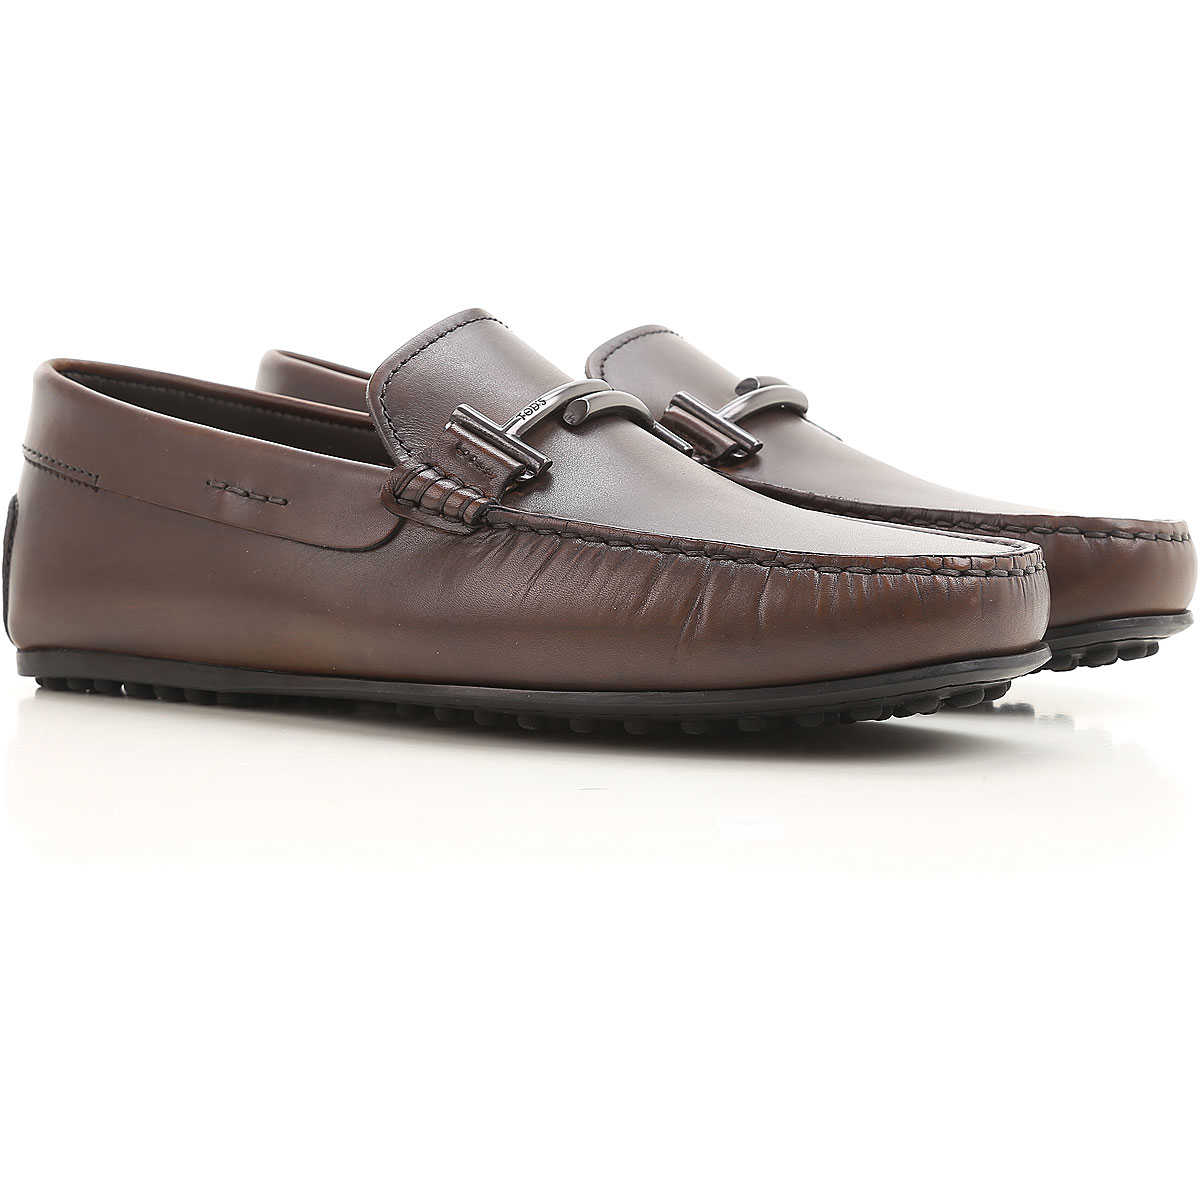 Tods Loafers for Men Bark brown USA - GOOFASH